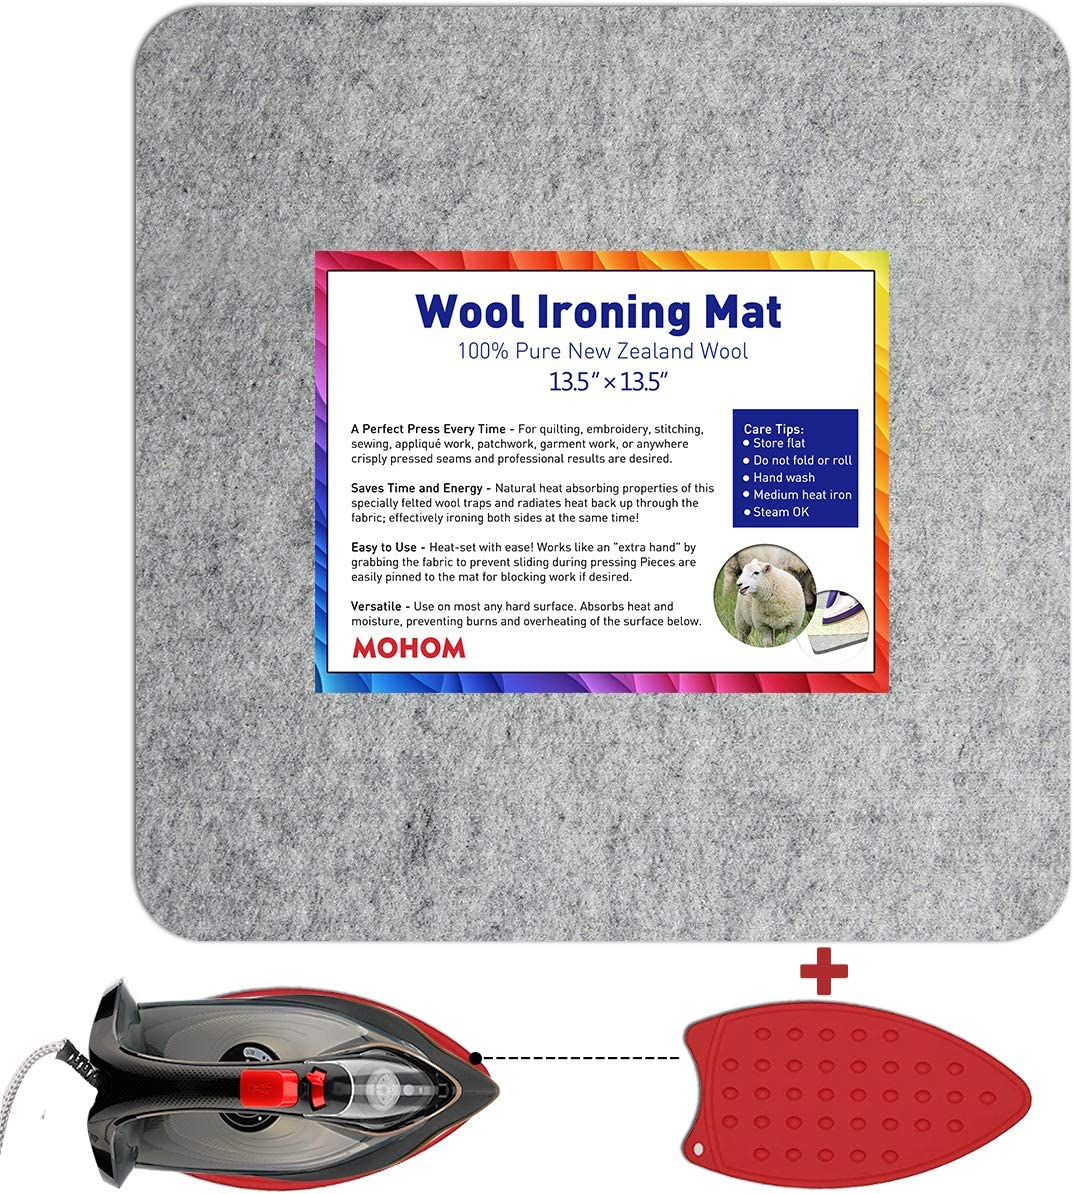 Perfect Ironing Station with Protective Ironing Pressing Pad and Silicone Iron Rest Pad 13.5 x 13.5 Wool Ironing Mat for Quilting New Zealand Wool Pressing Pad